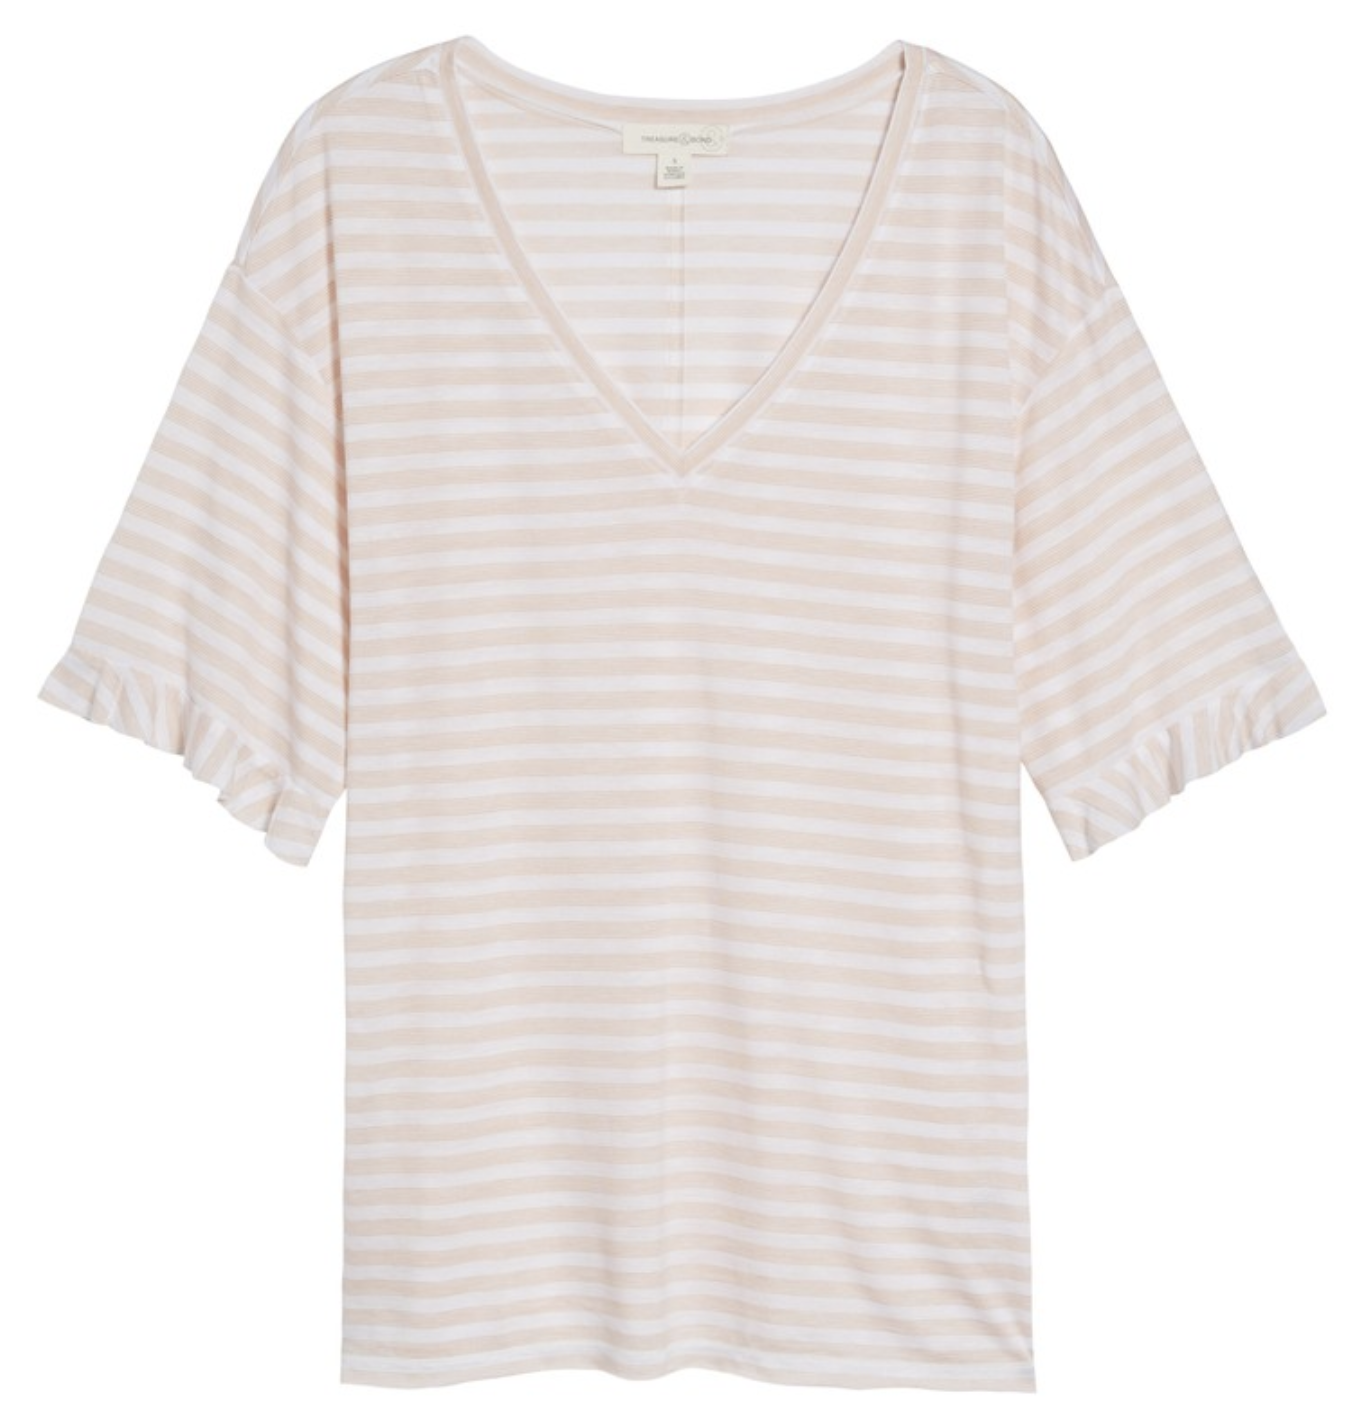 June monthly favorites Ruffle Sleeve Tee